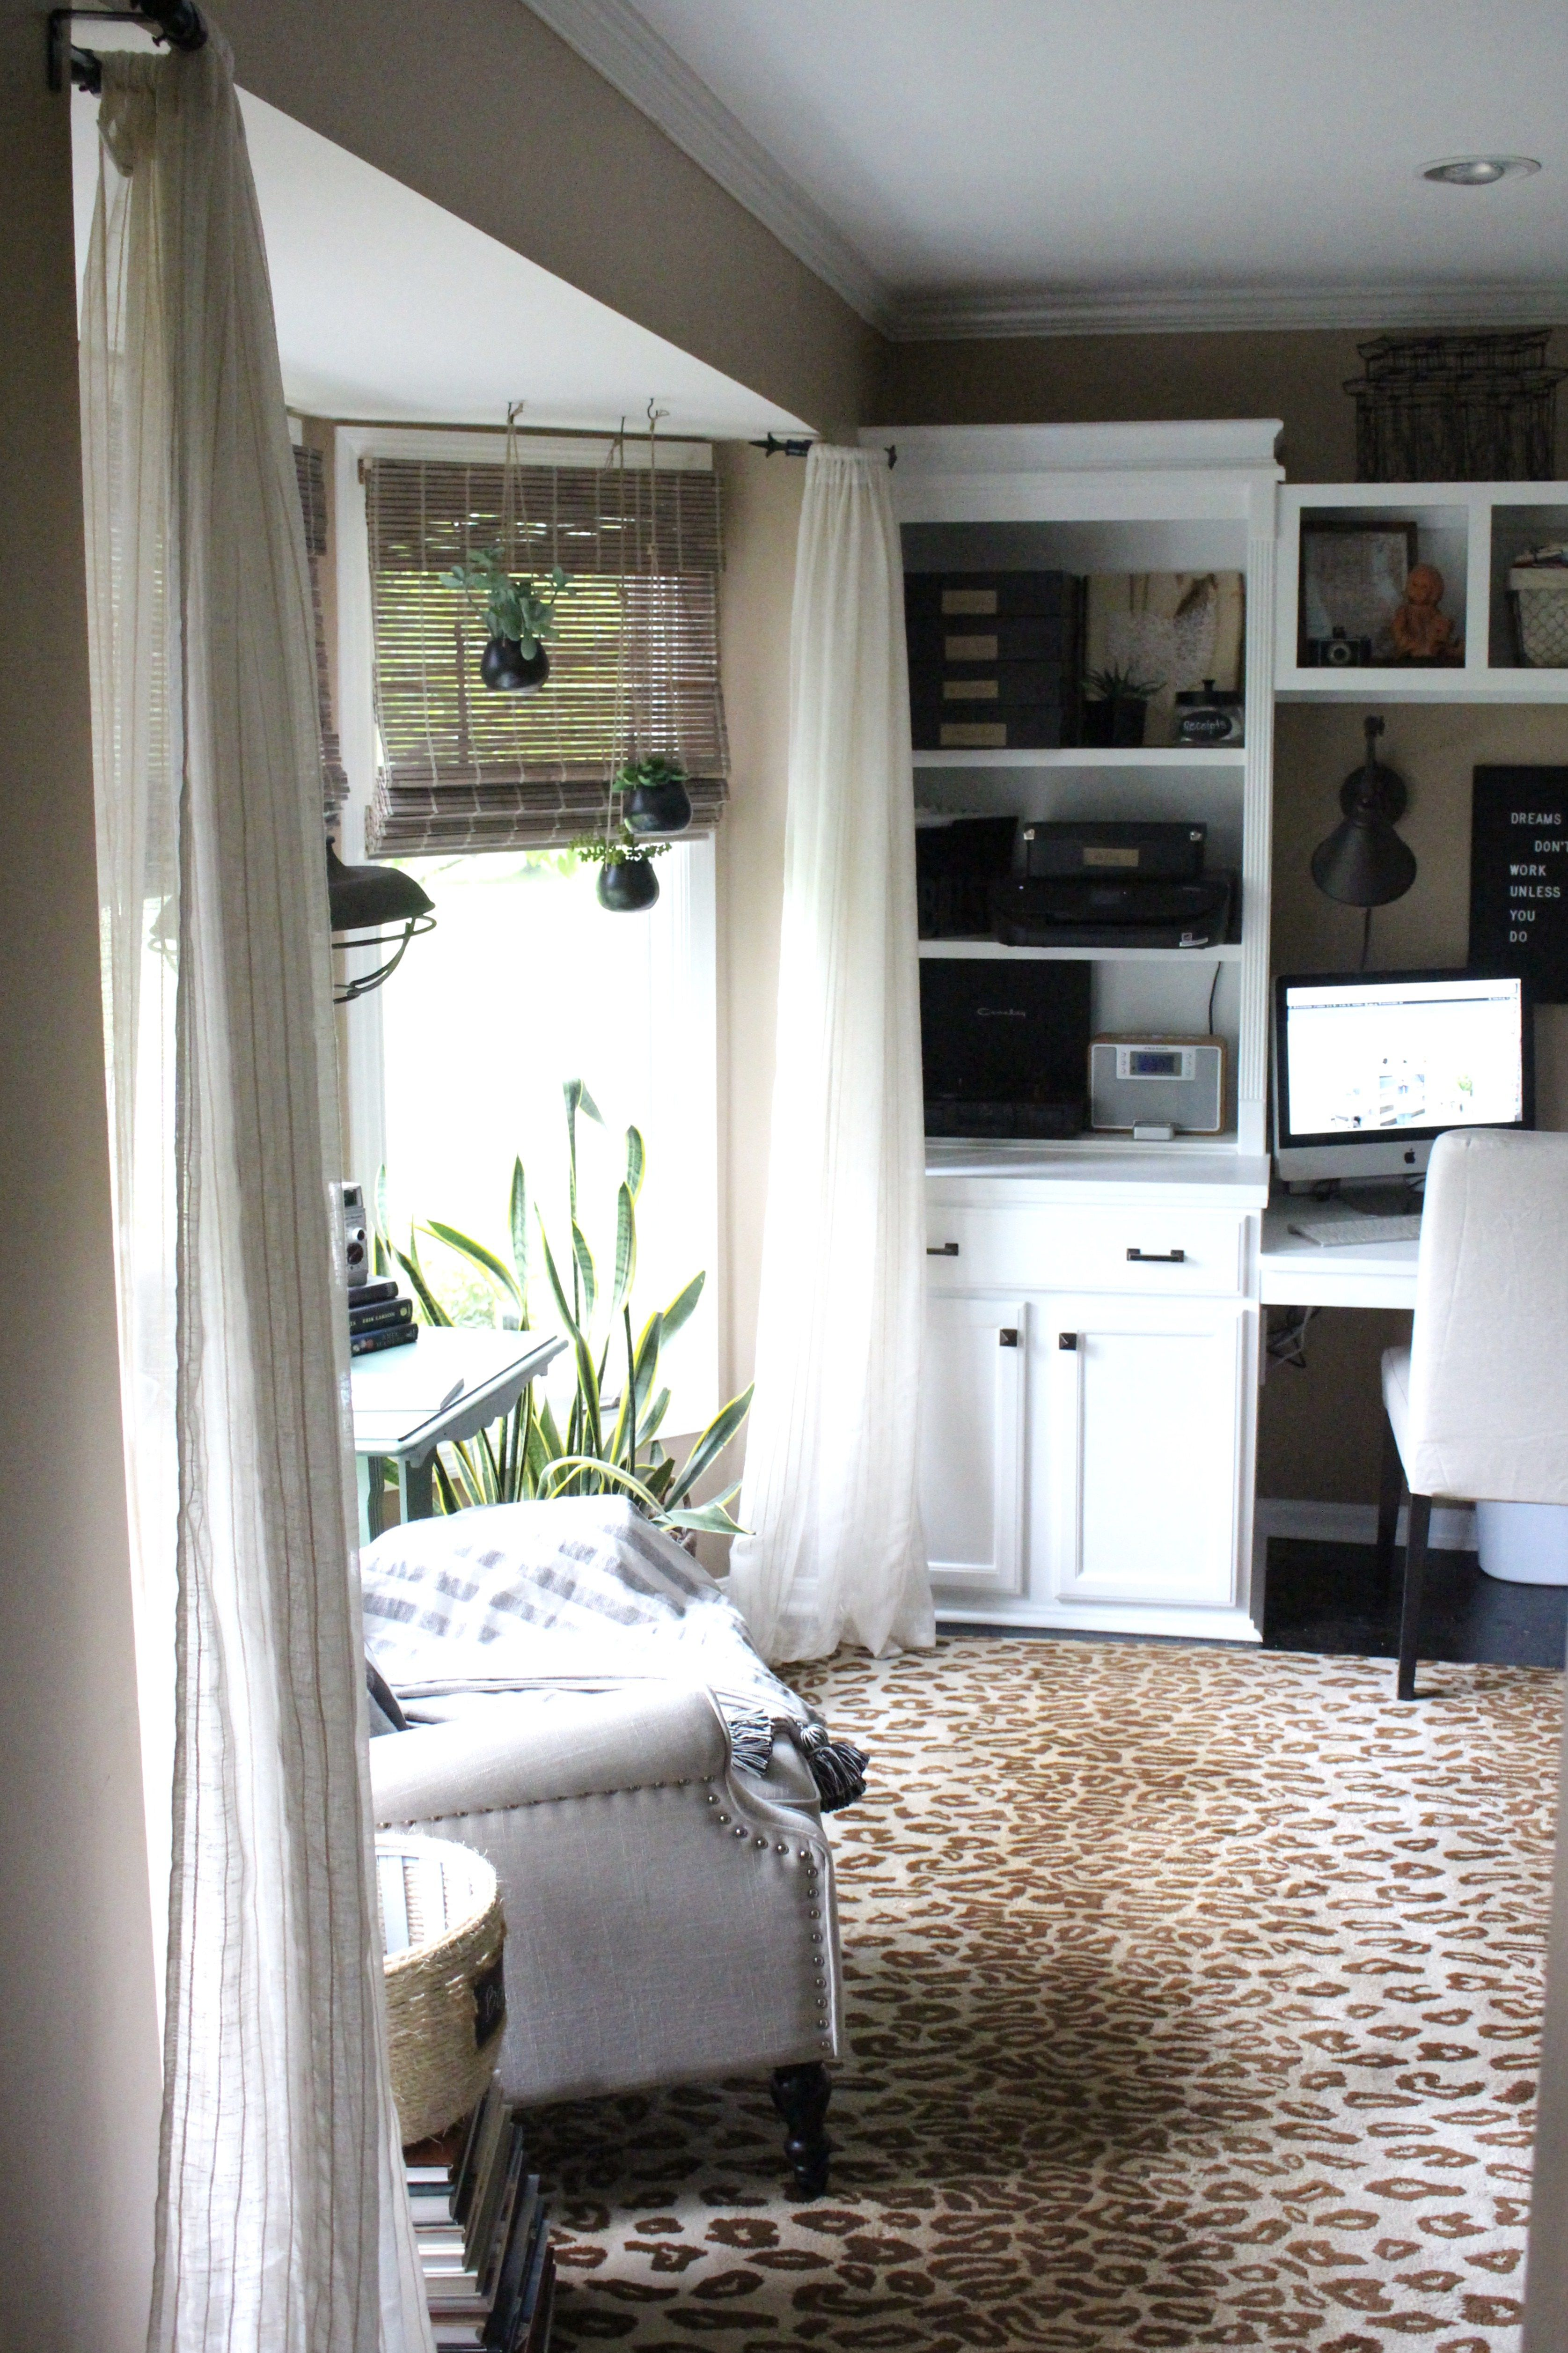 Home Office Craft Room Reveal Space Supply Storage Ideas One Challenge Renovation Tour Makeover